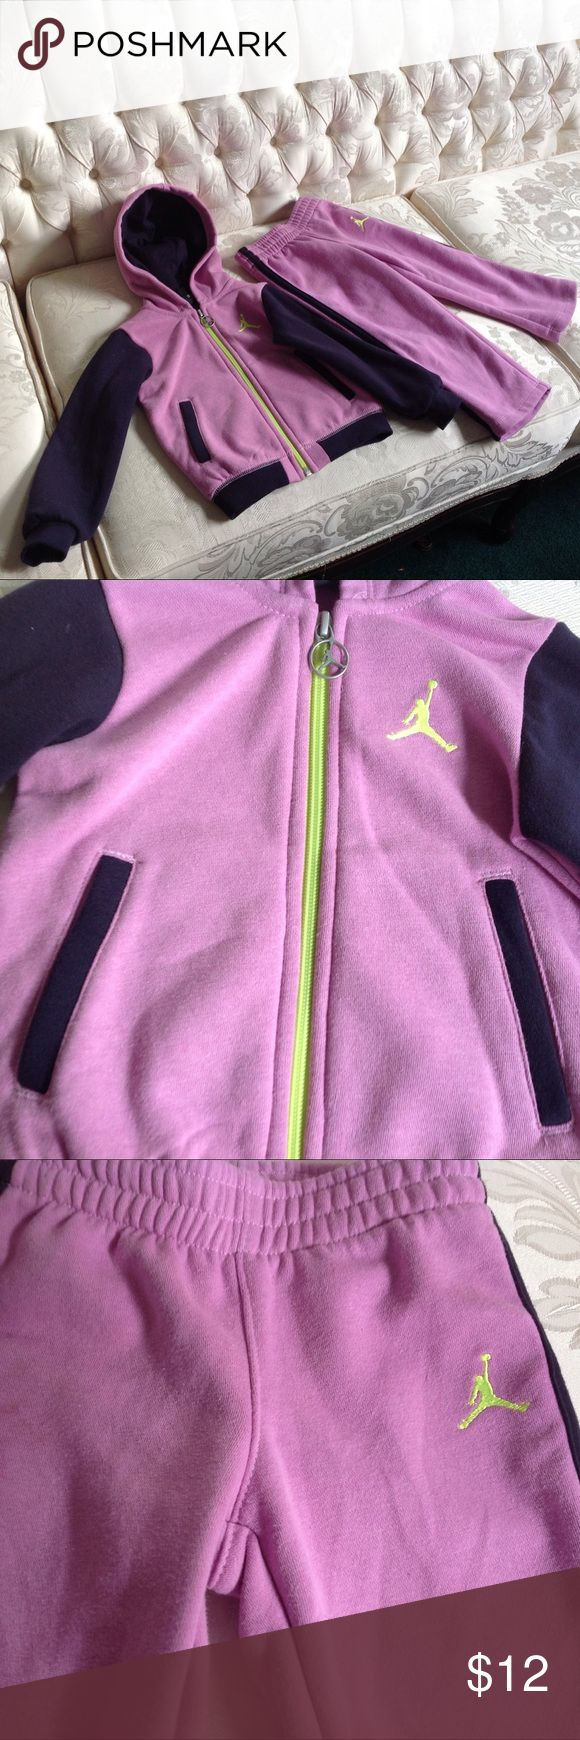 TODDLER NIKE JOGGING SUIT TODDLER NIKE JOGGING SUIT, SIZE 2T Nike Matching Sets